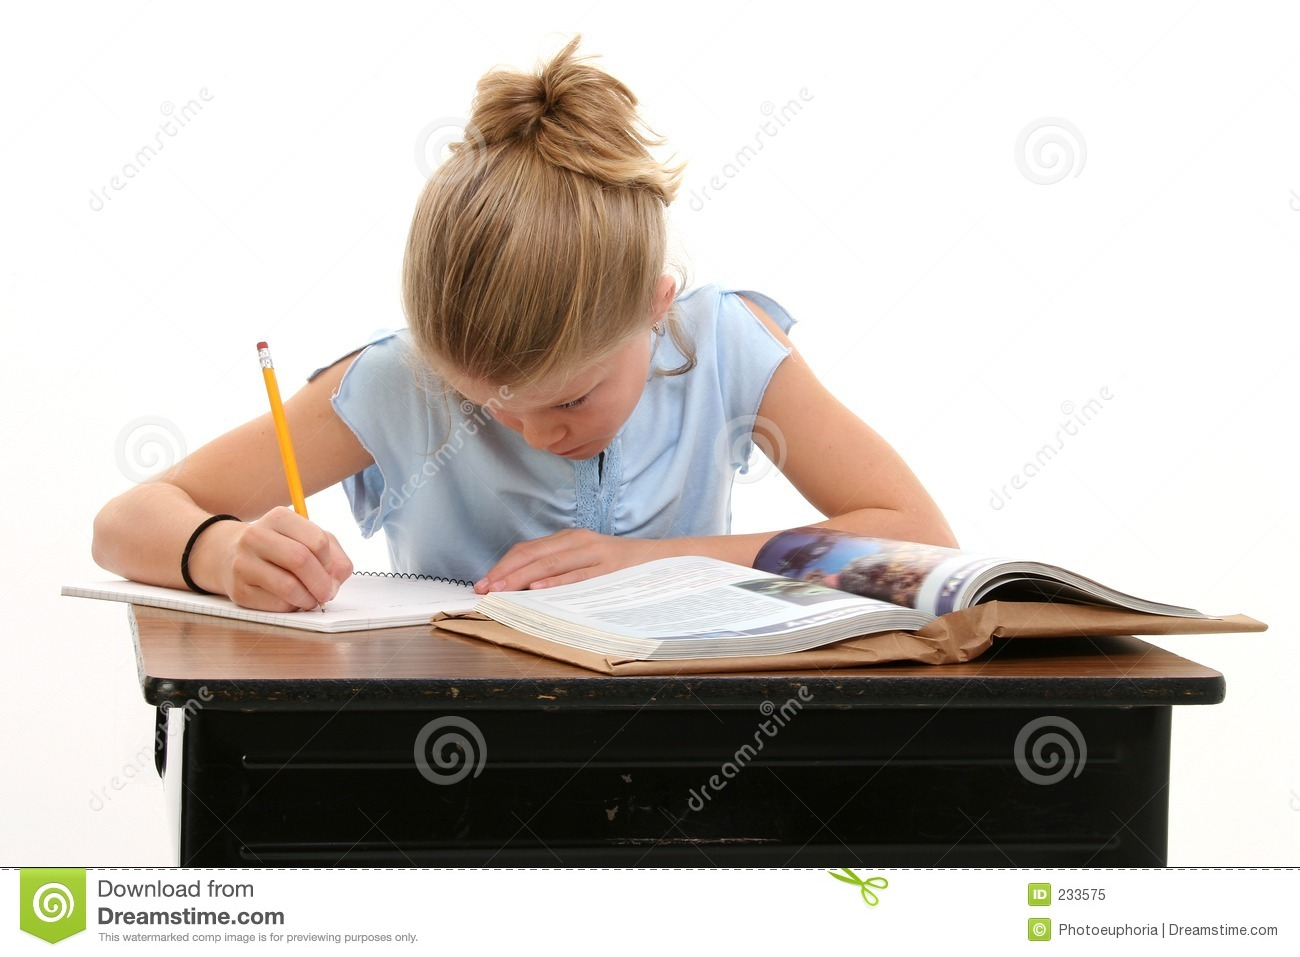 Child at Desk Doing Work 1300 x 957